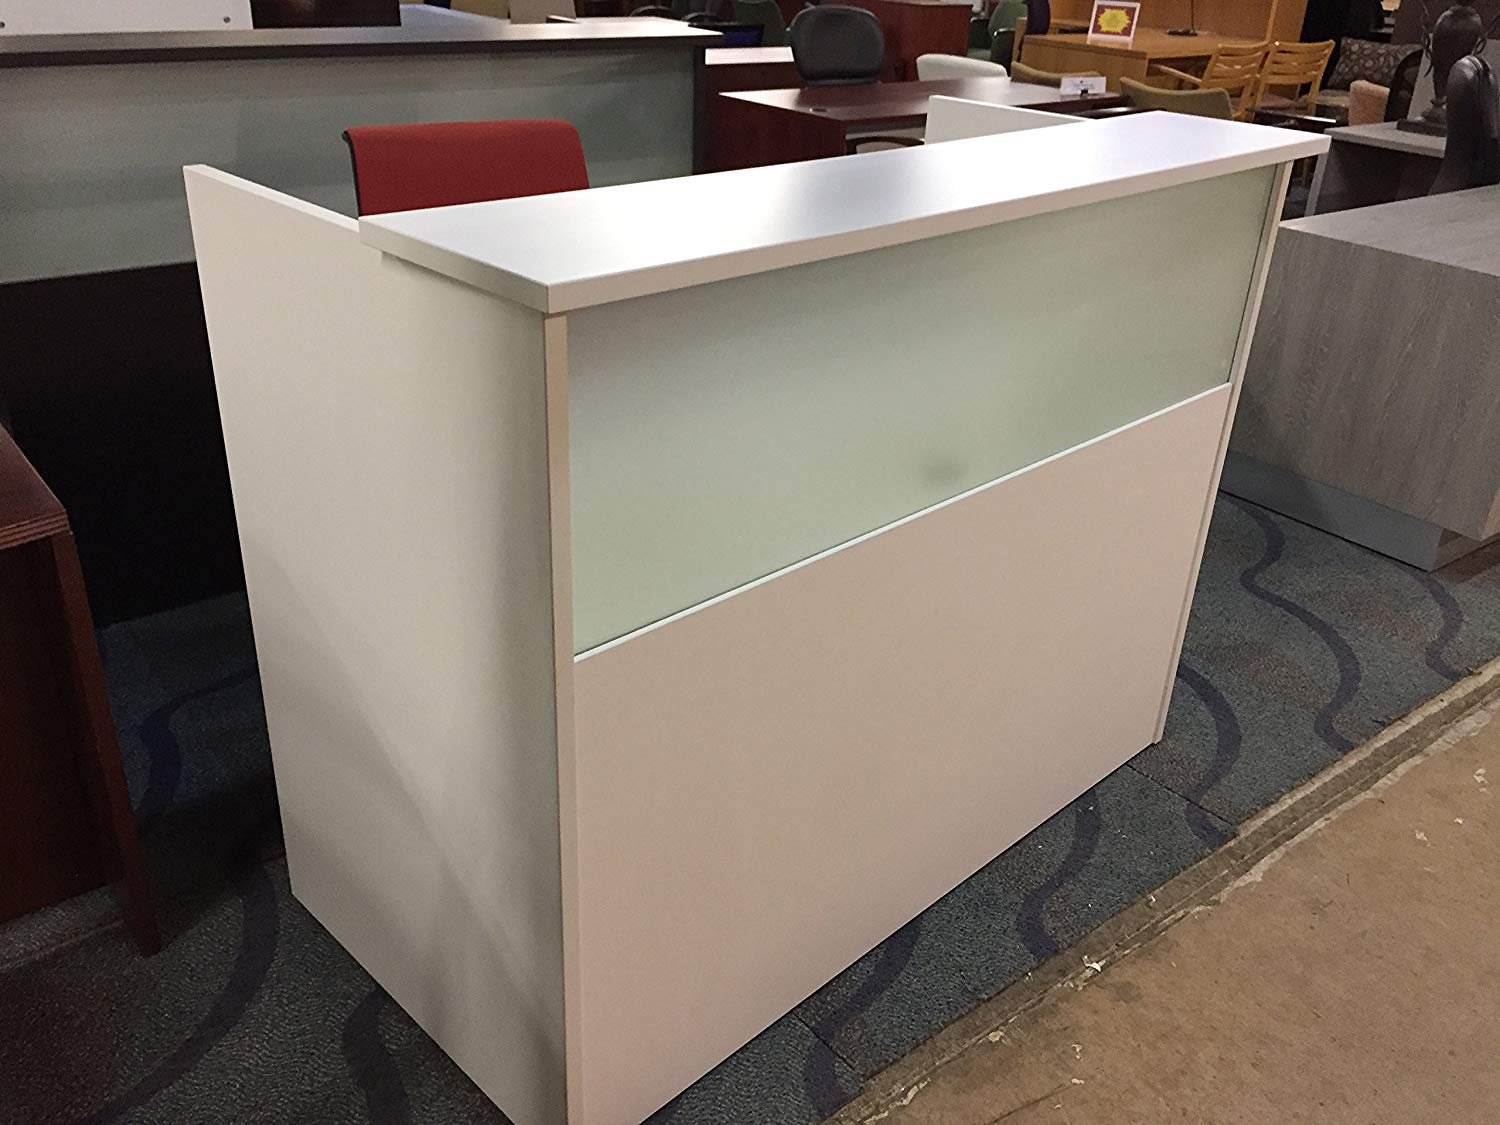 """DFS Reception desk shell which fits a 15"""" monitor - 60"""" W by 30"""" D by 44"""" H White W/ frosted glass front by DFS Designs"""